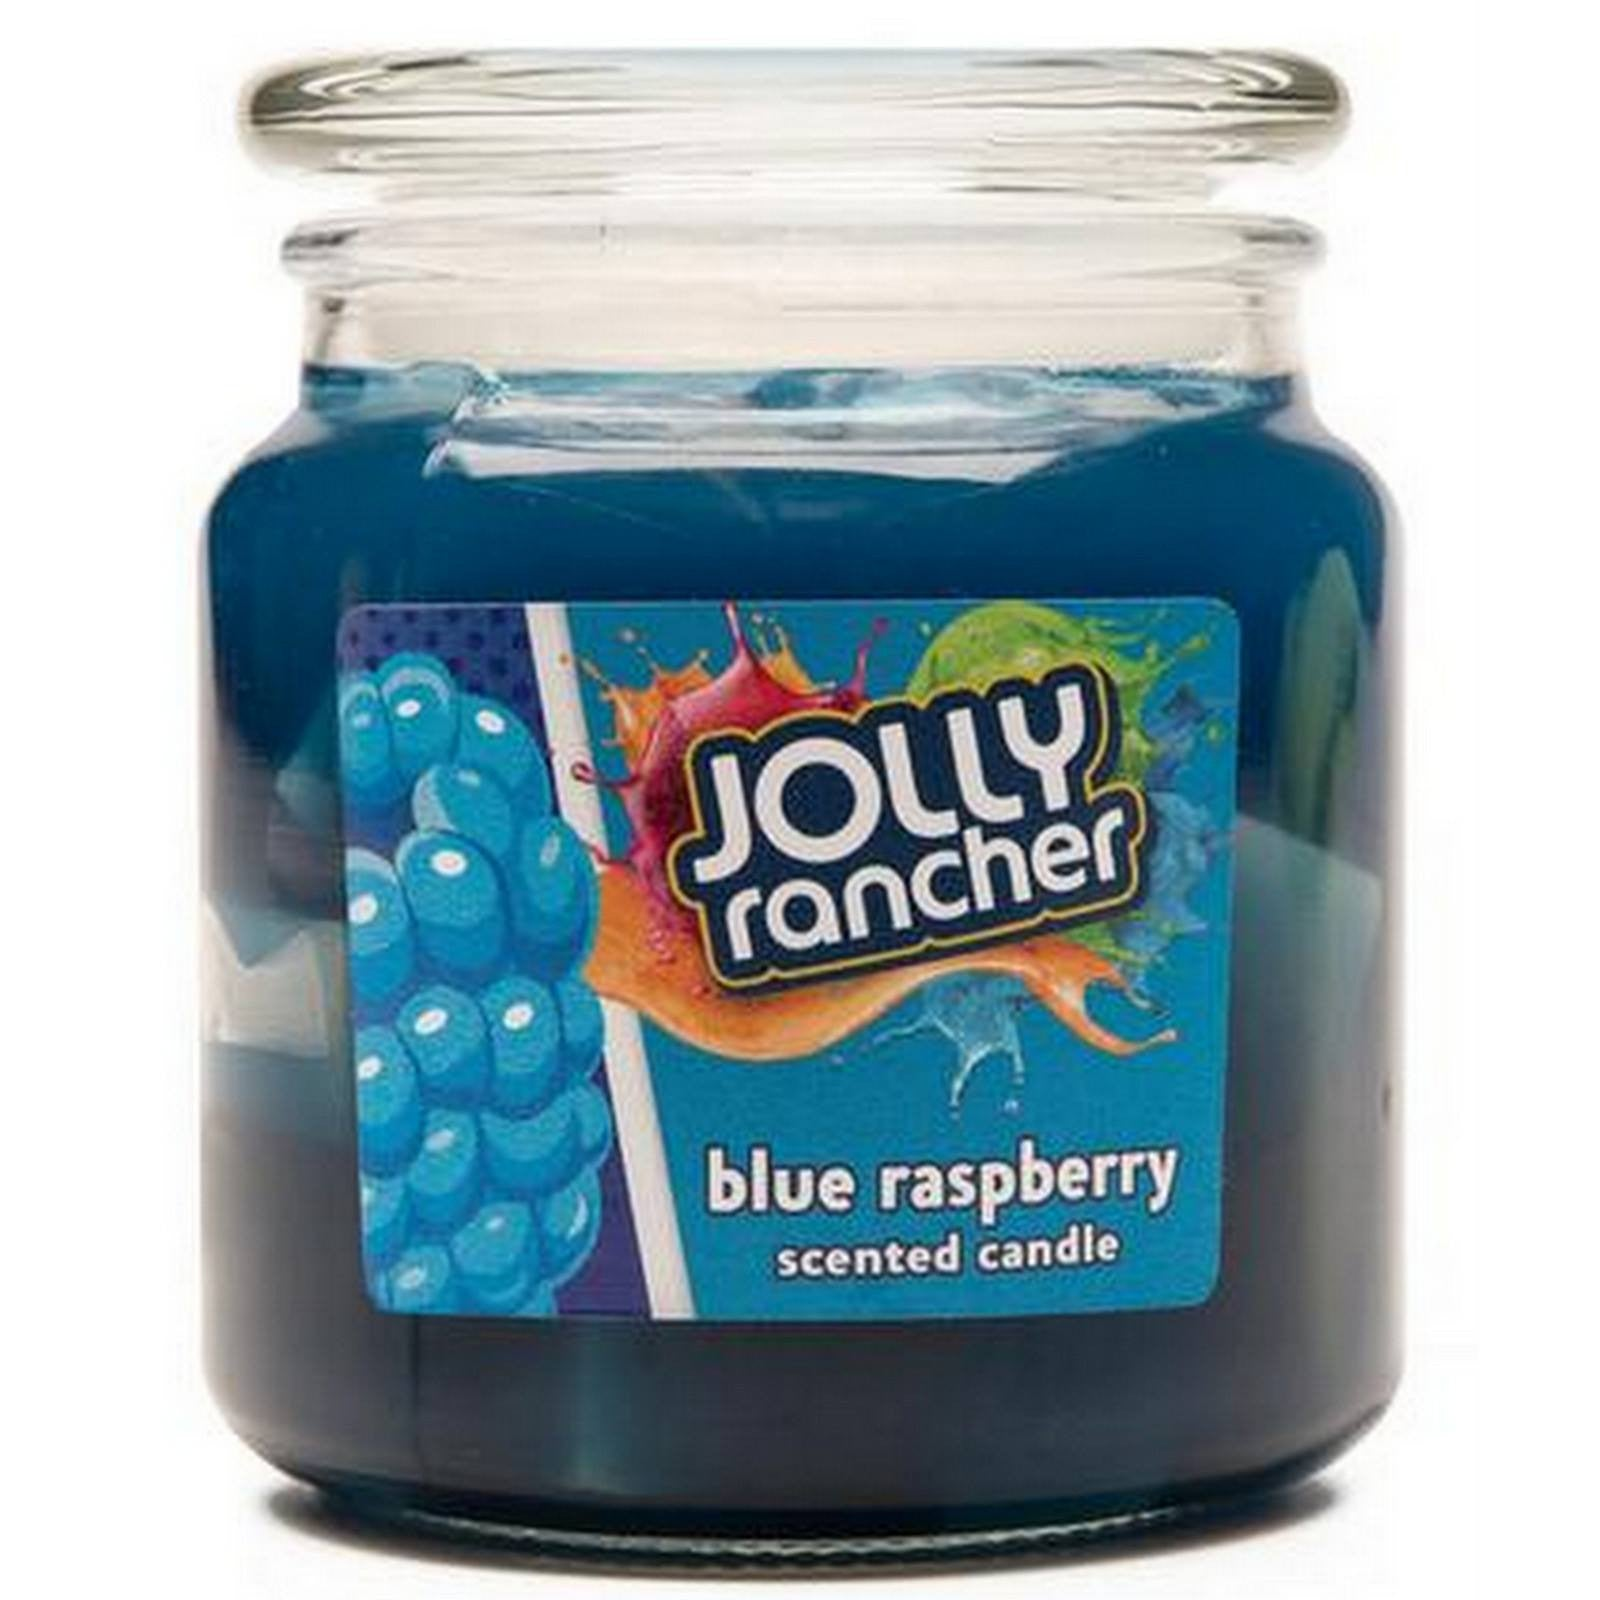 Jolly Rancher Blue Raspberry Scented Jel Candle Jel Candles Candlemart.com $ 9.99